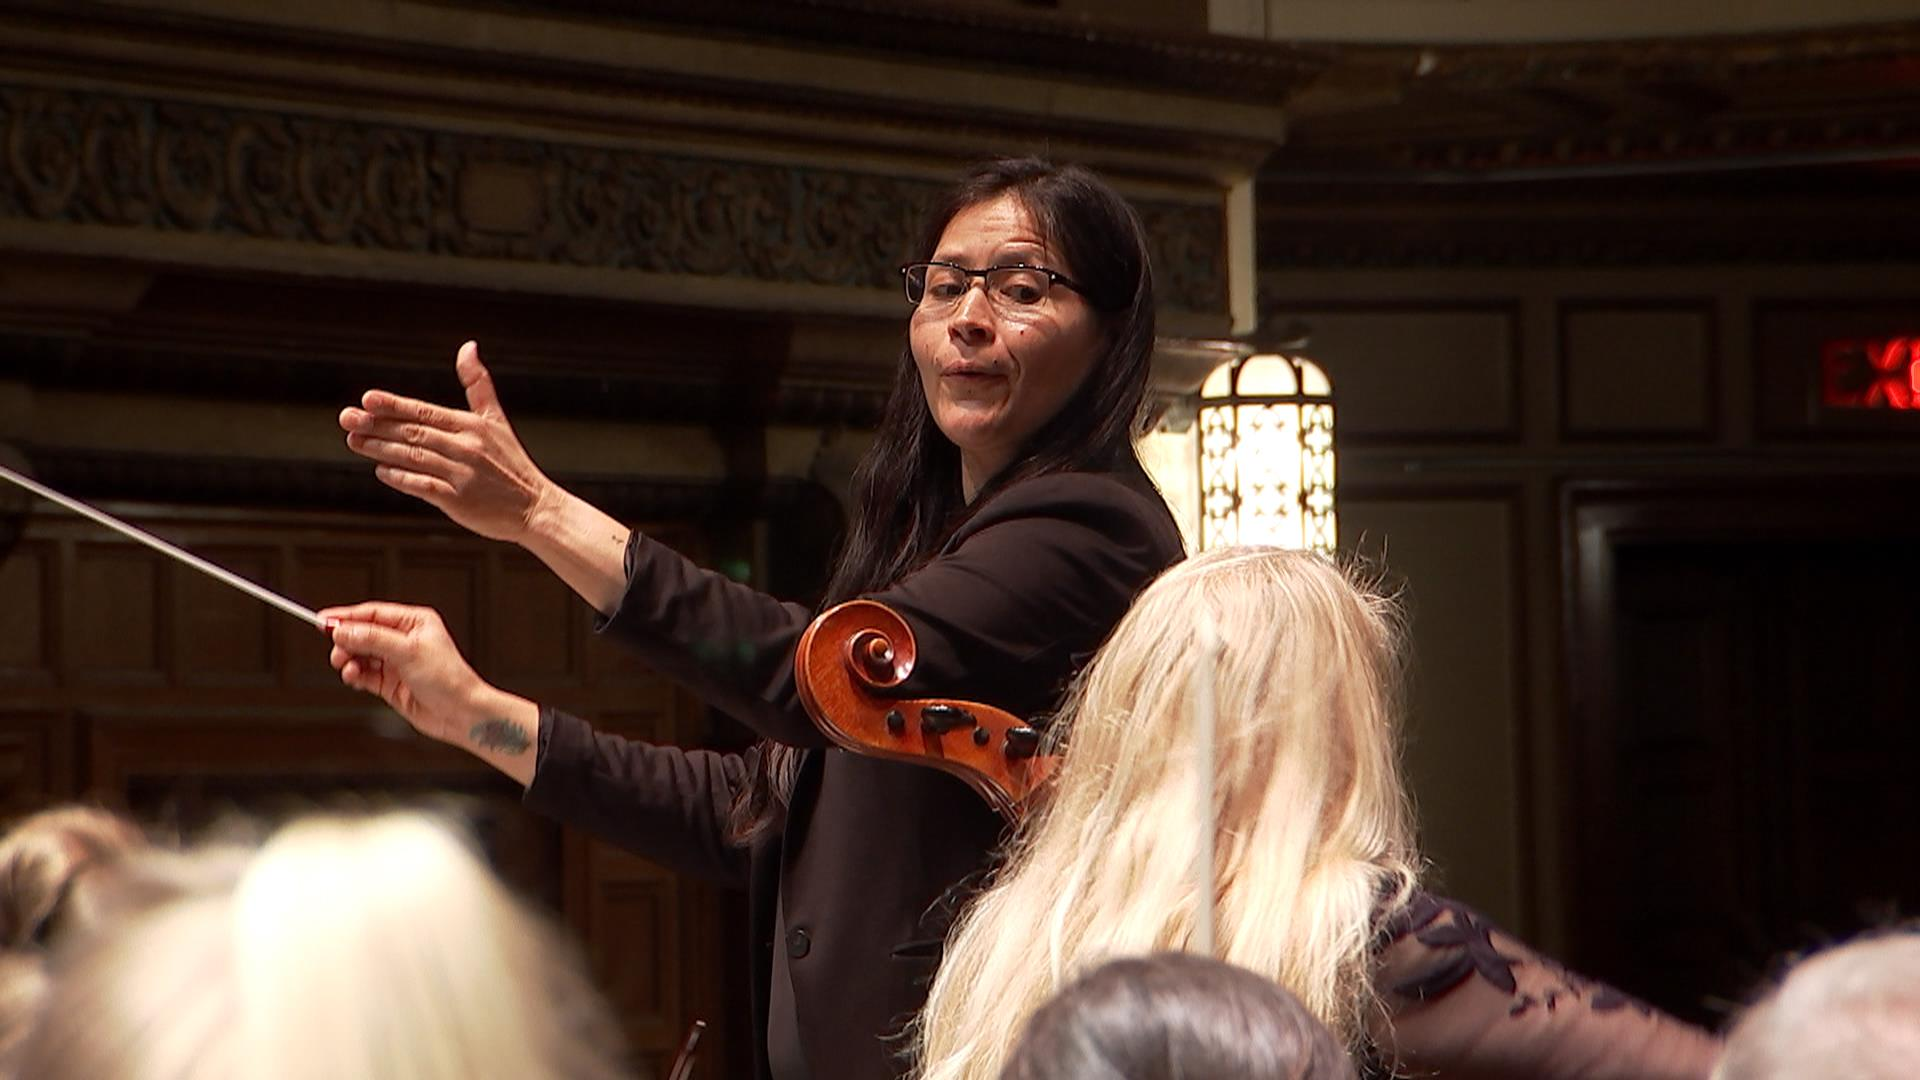 Meet the woman breaking barriers as a trailblazing symphony conductor